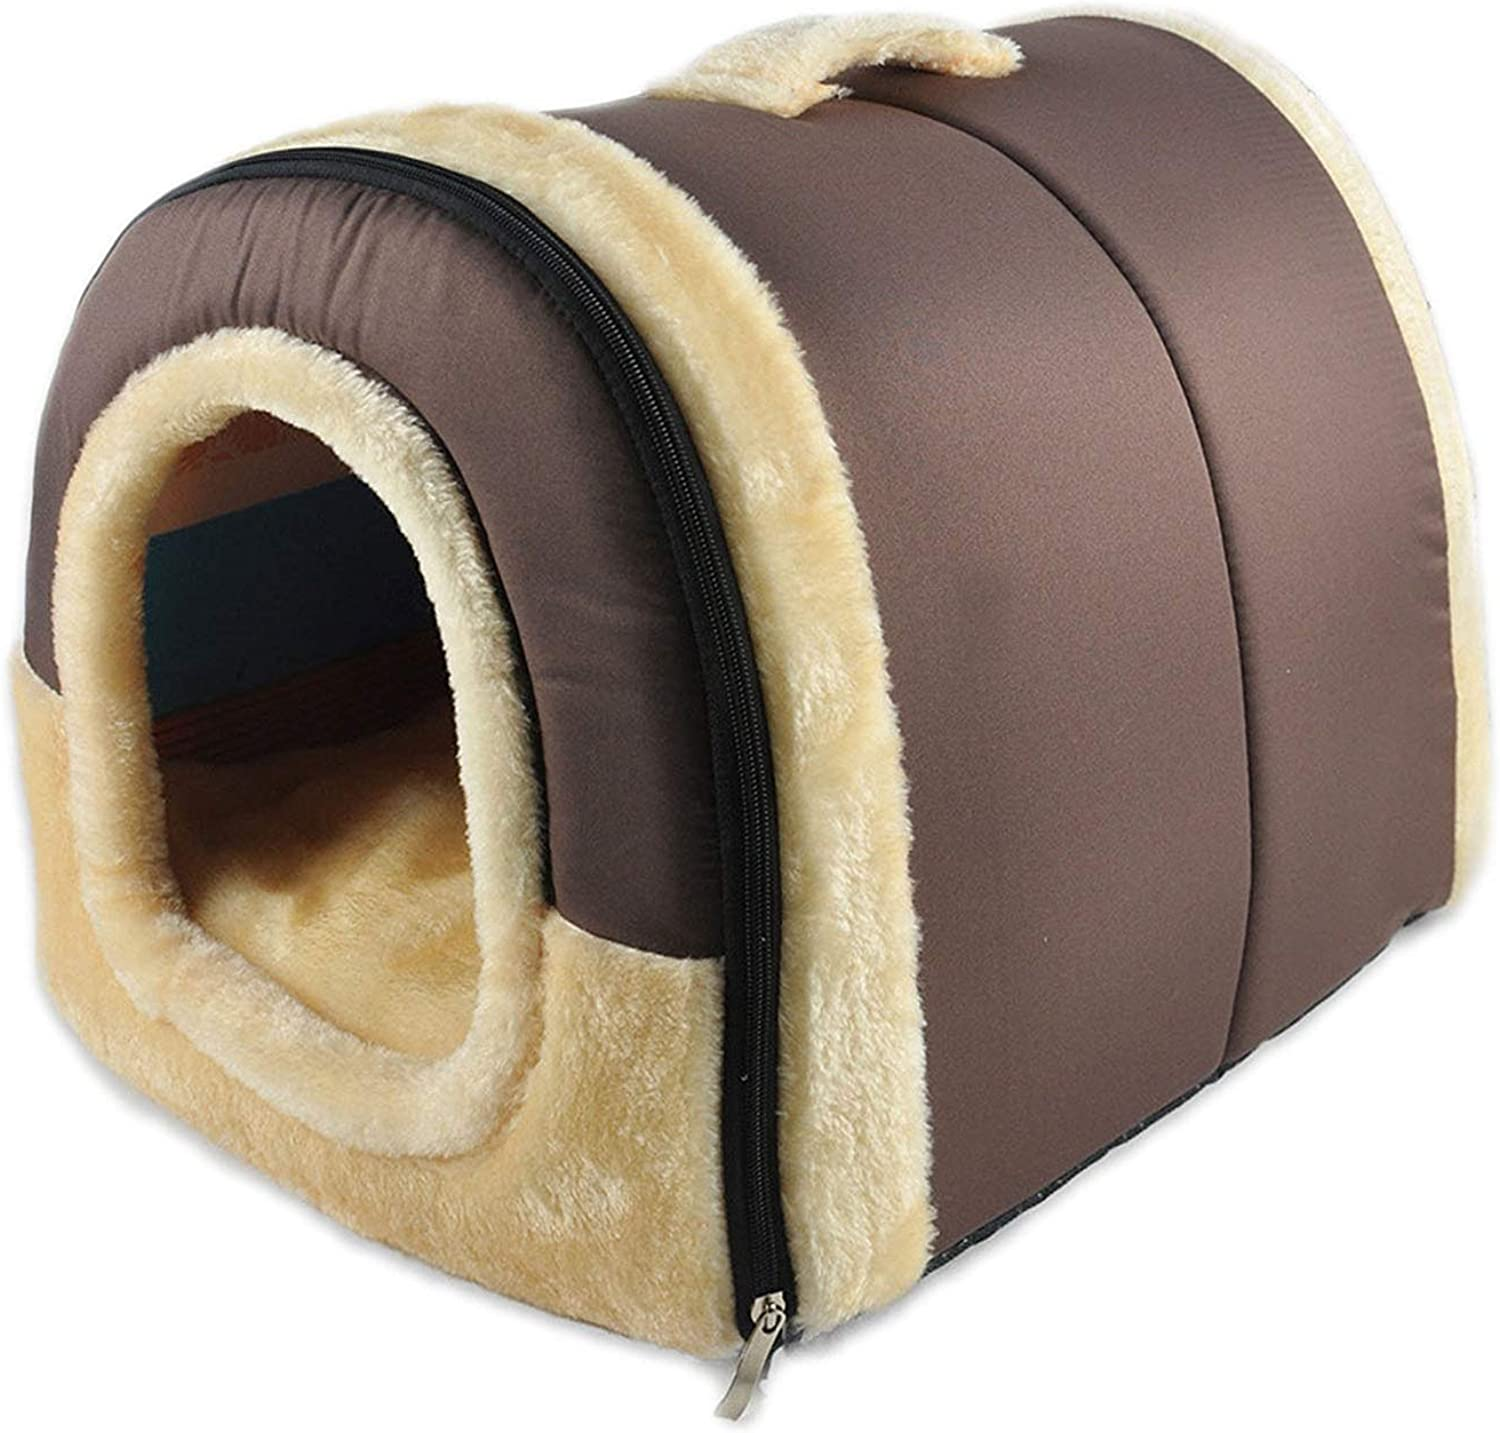 LIAN Store 2 In 1 Home and Sofa Dog Bed Cat Puppy Rabbit Pet Soft Pet Kennel Sleeping Bag House Puppy Cave Bed,60cm X 45cm X 45cm